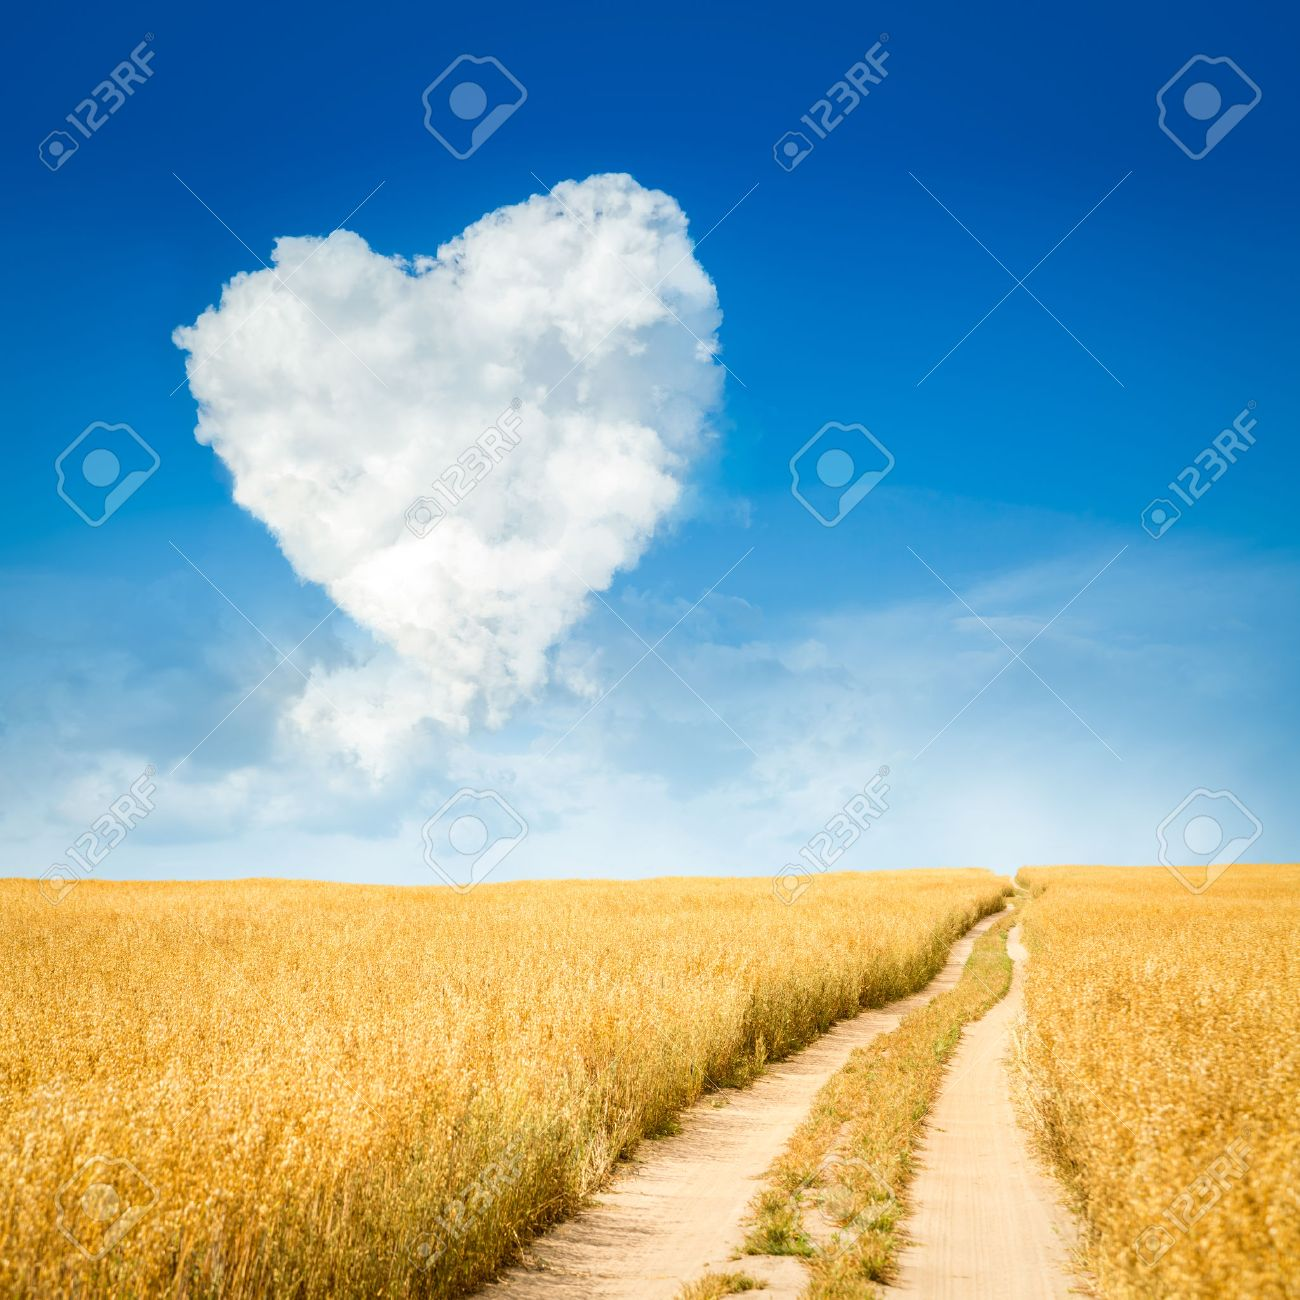 Heart Shaped Cloud and Yellow Field Landscape. Summer Blue Sky with Copy Space. Love and Valentine's Day Concept. - 51997081